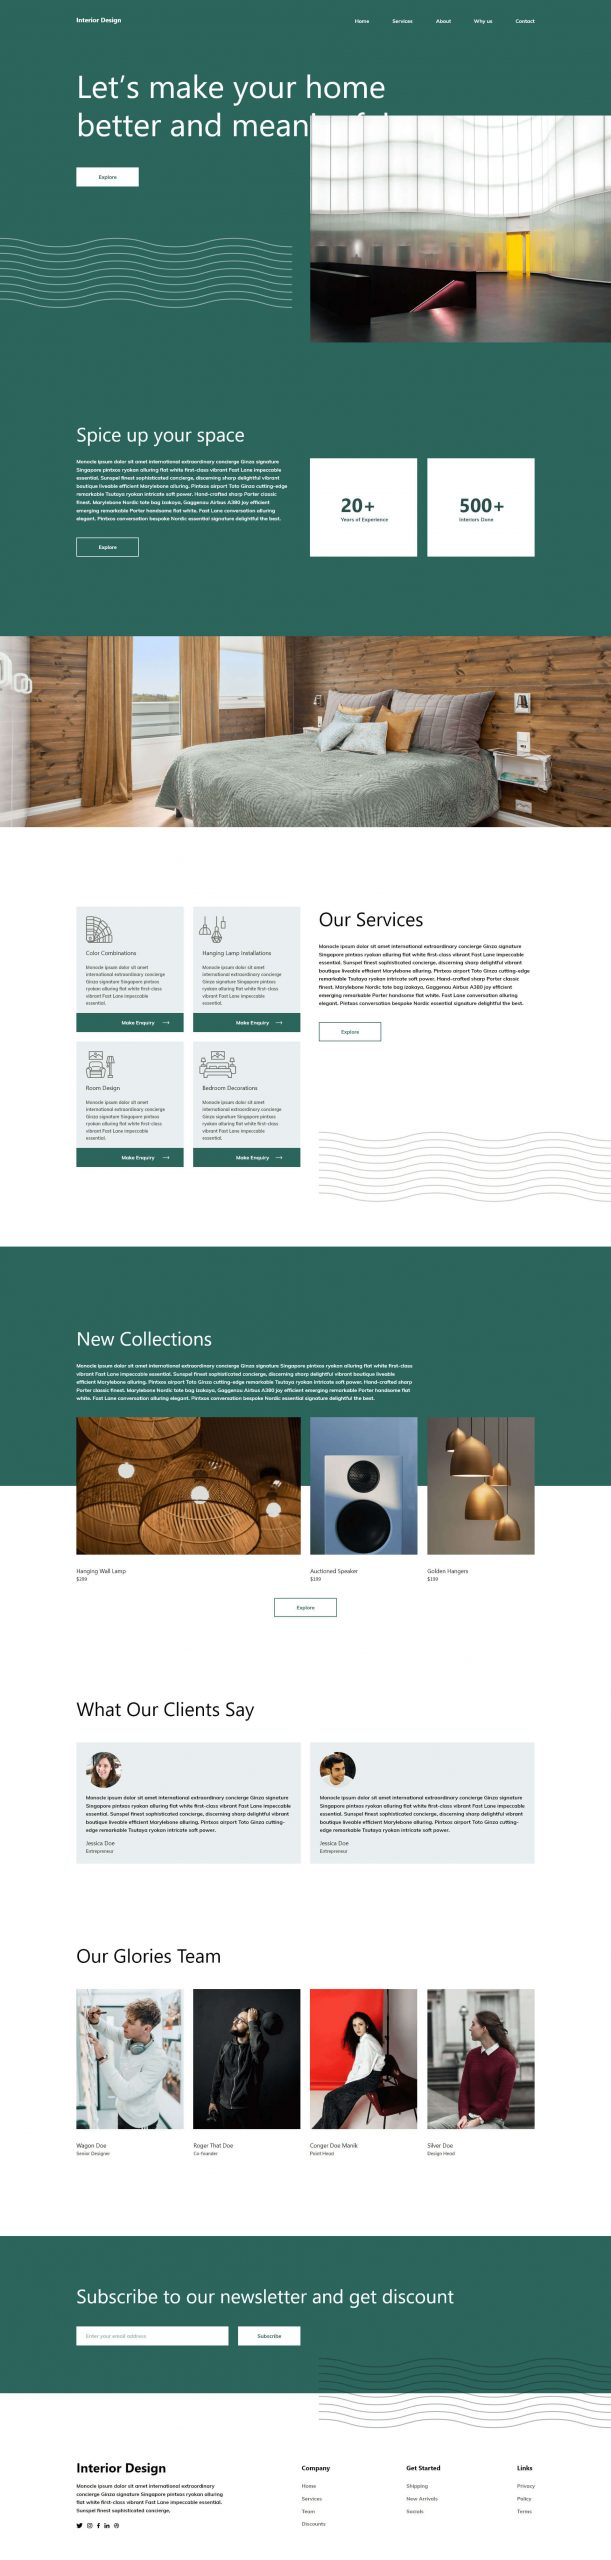 PowerPack Elements Template - Interior Design